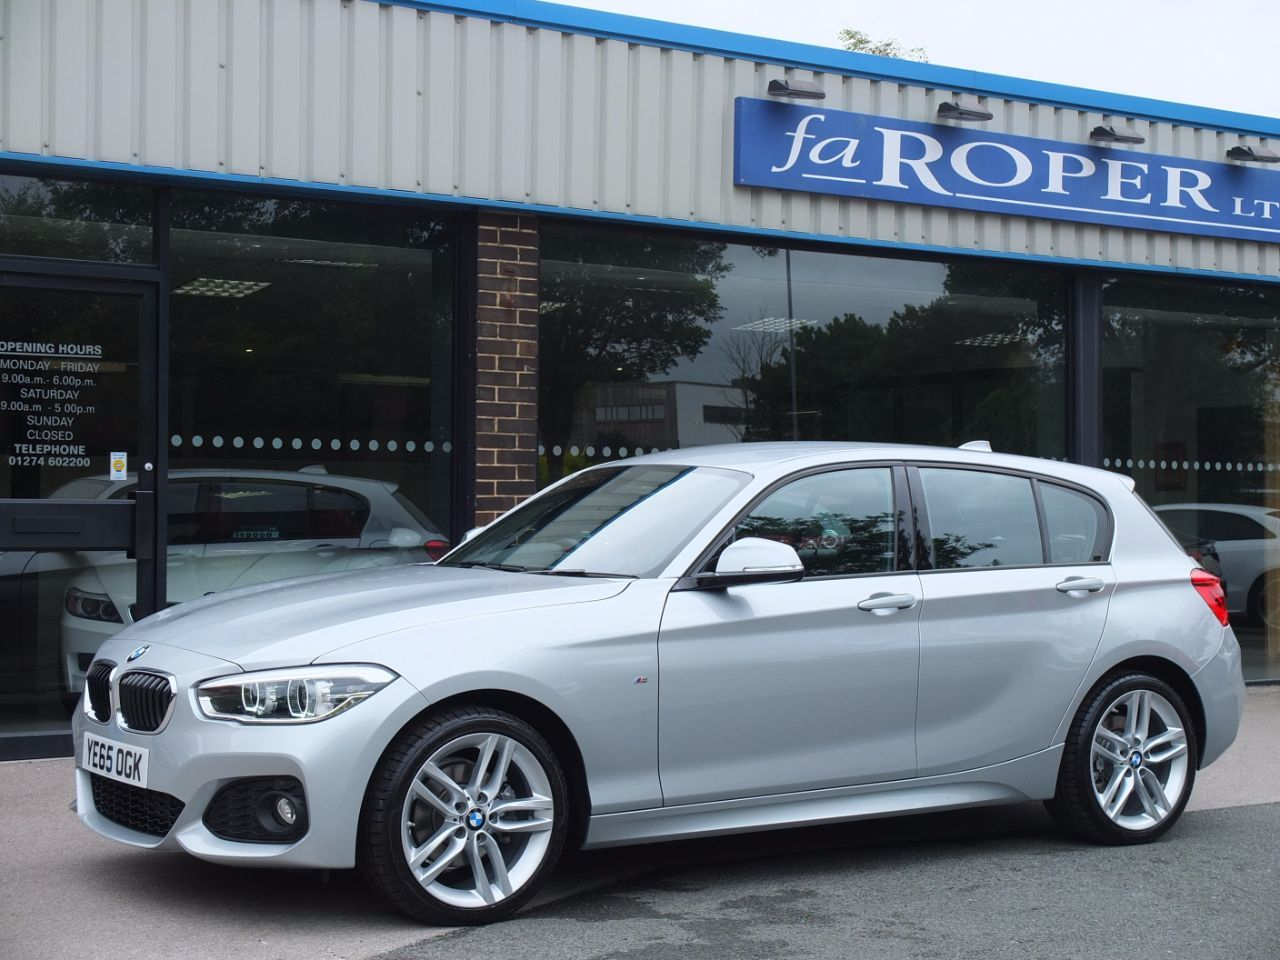 used bmw 1 series 120d xdrive m sport 5 door auto for sale in bradford west yorkshire fa. Black Bedroom Furniture Sets. Home Design Ideas